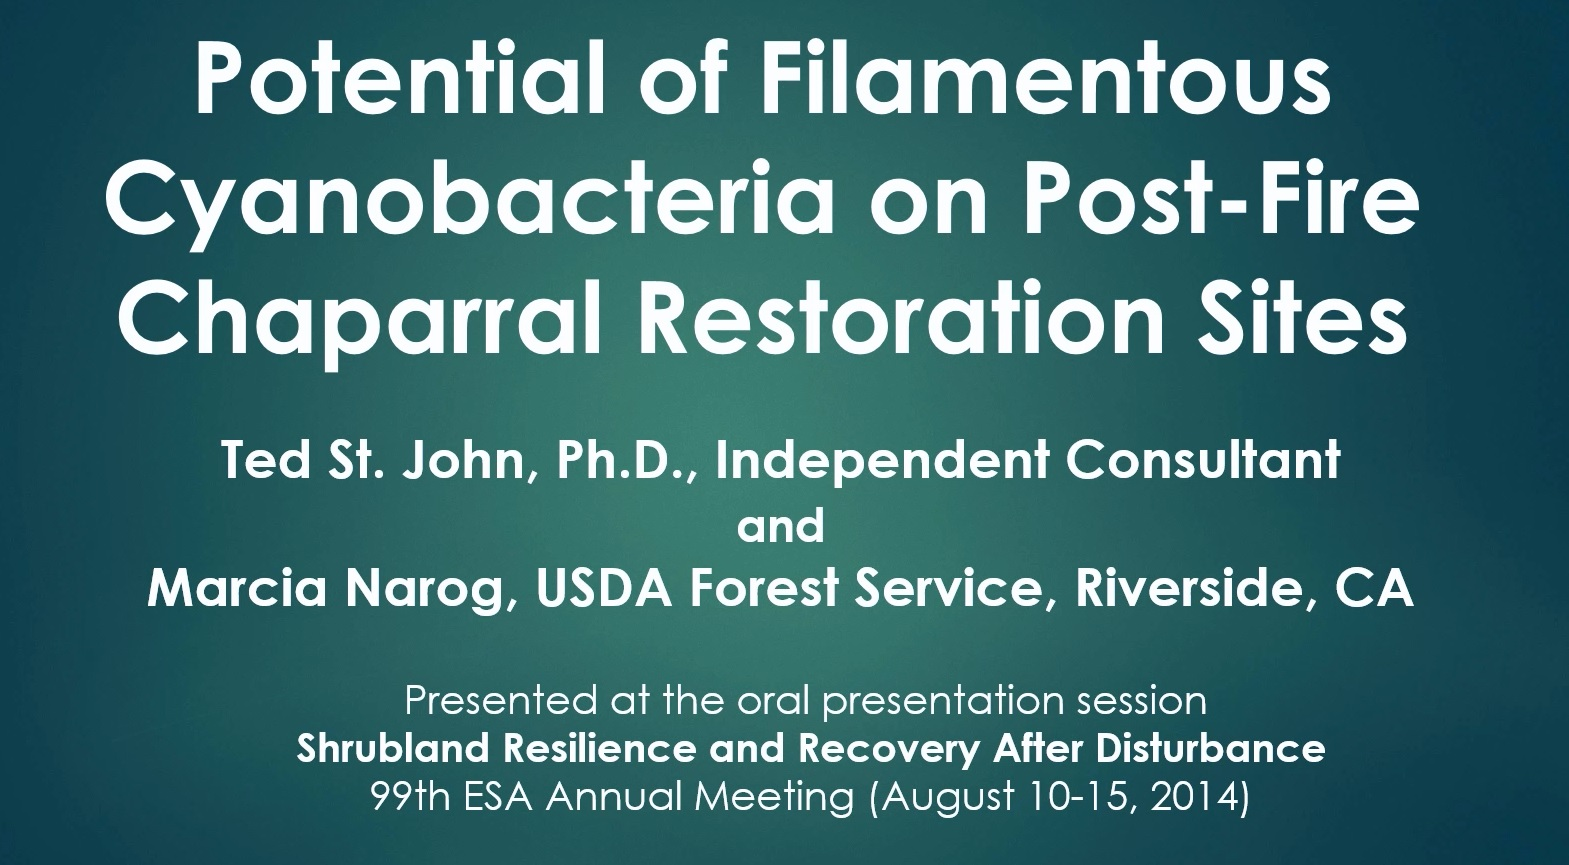 Preview image for presentation titled, Potential of Filamentous Cyanobacteria on Post-Fire Chaparral Restoration Sites